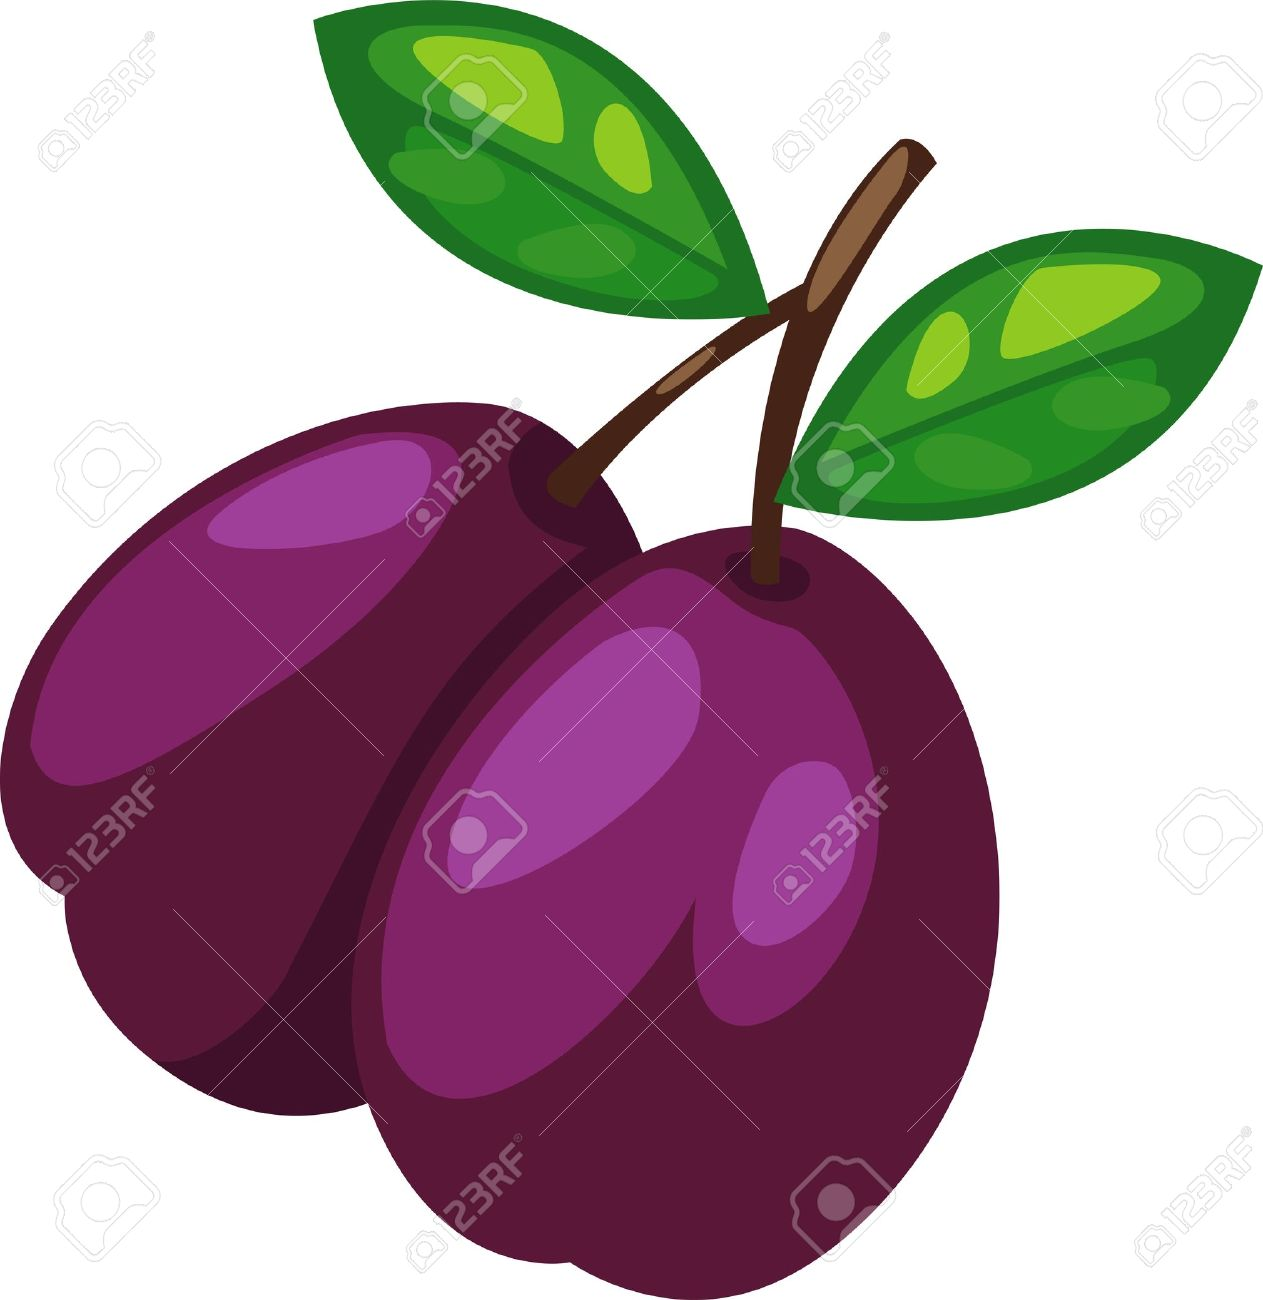 15,915 Plum Fruit Stock Vector Illustration And Royalty Free Plum.